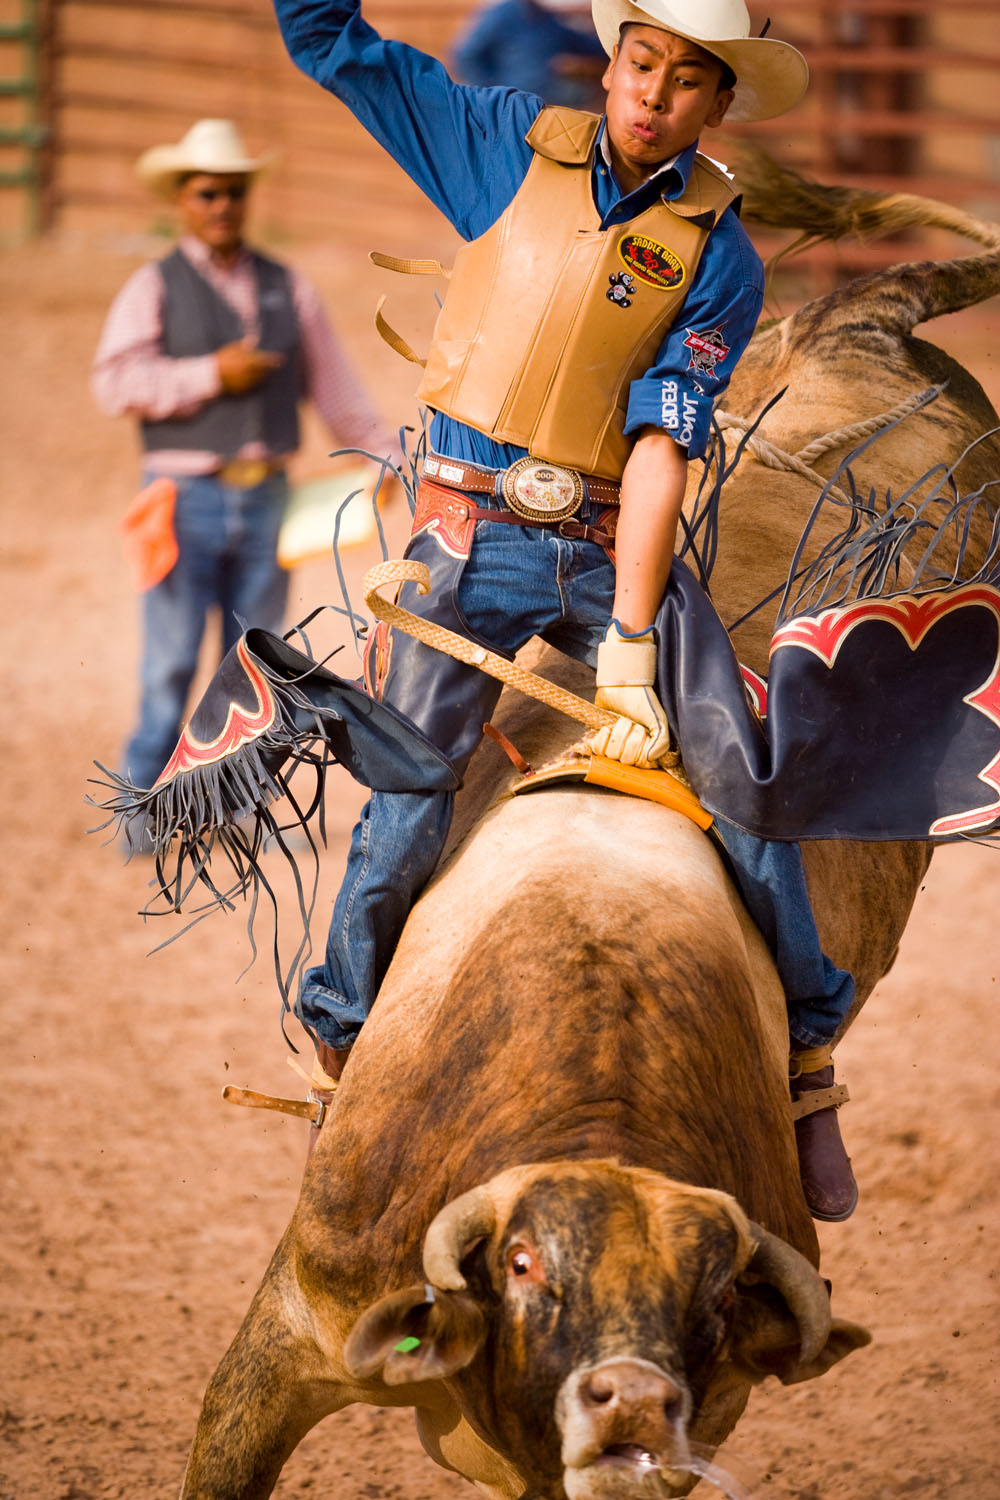 Bull rider in a rodeo captured with 300mm lens